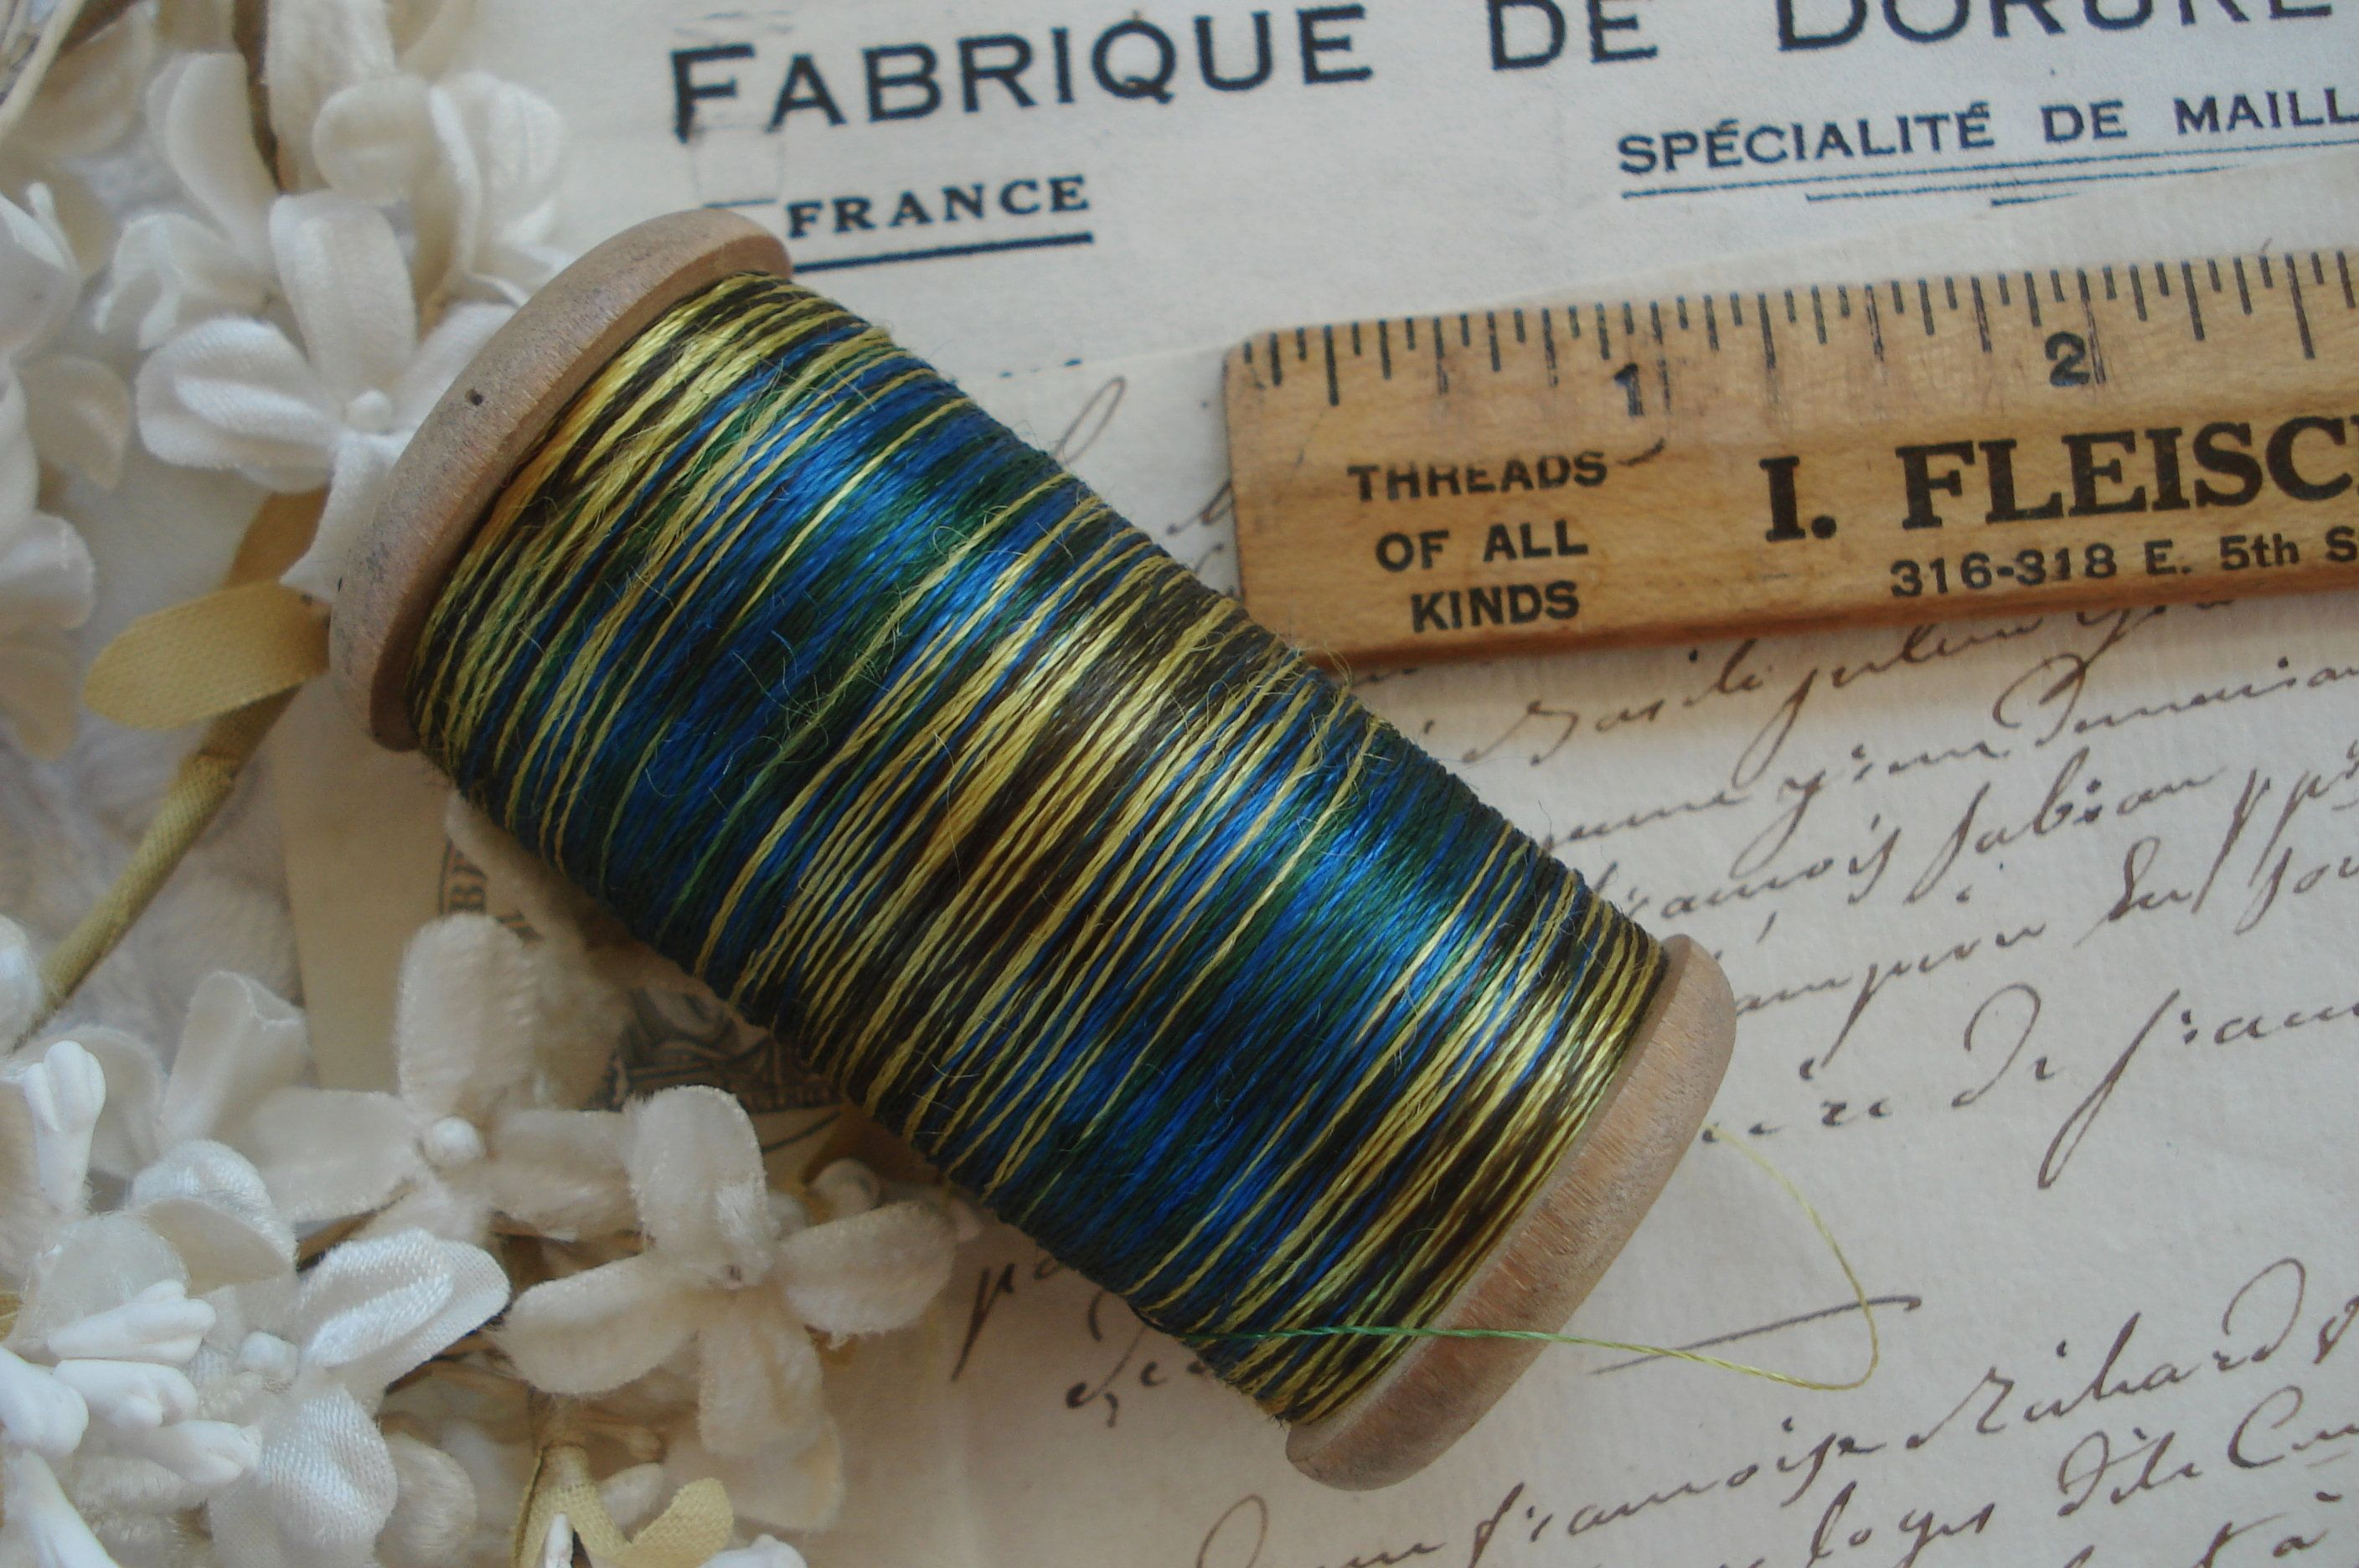 ANTIQUE FRENCH TRIM CORD  1 YARD SPARKLE BLUE OMBRE METAL LIGHT WEIGHT THREAD